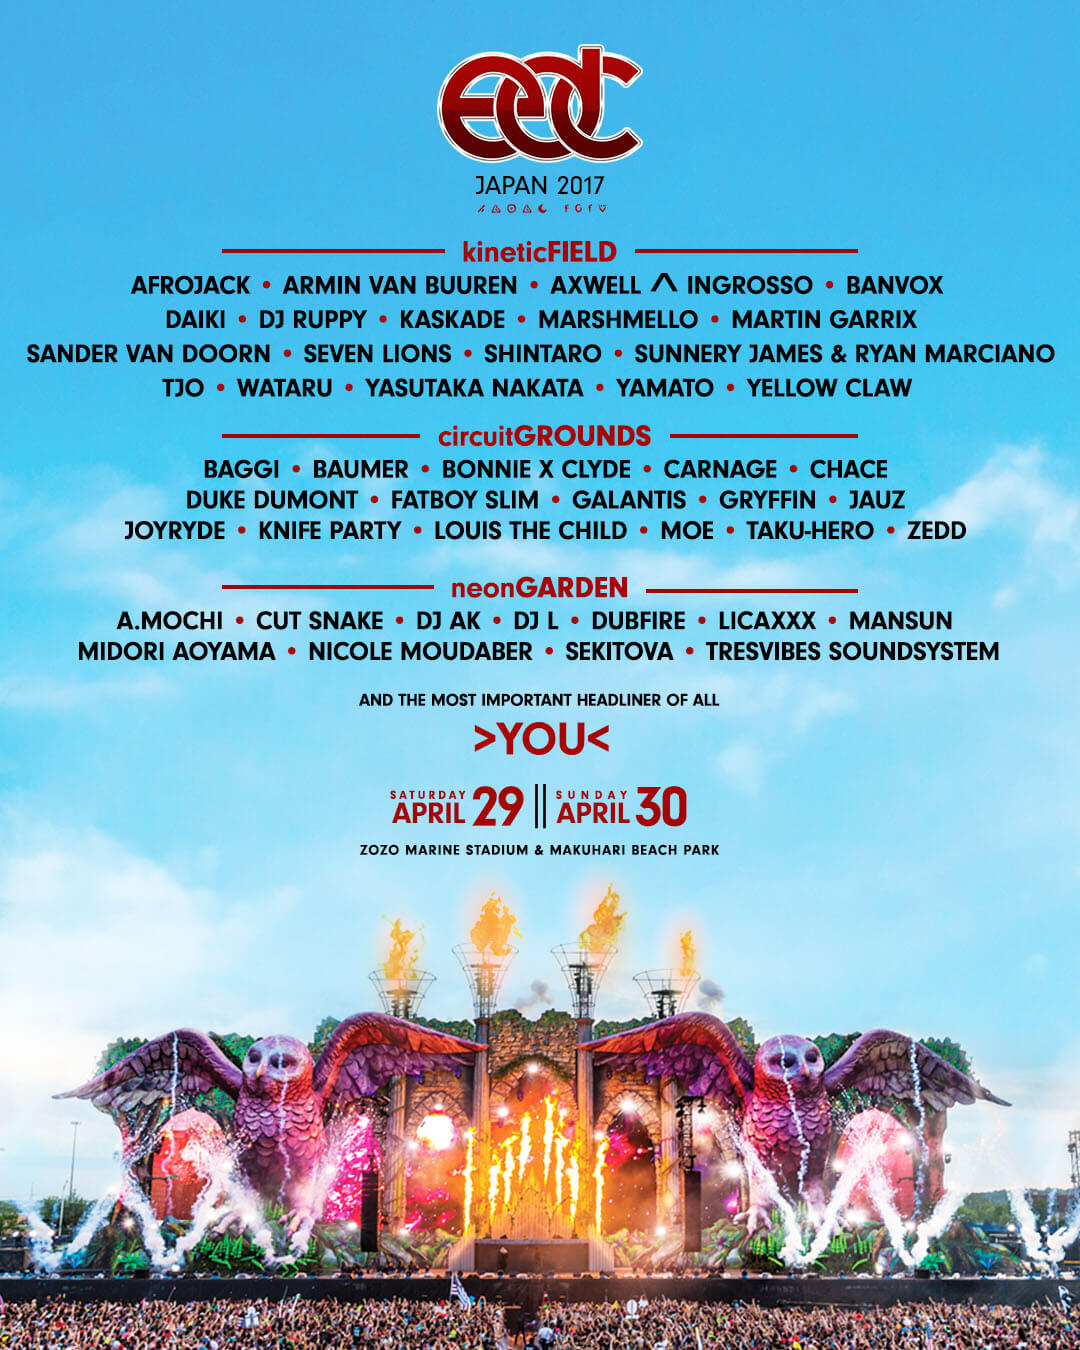 edc_japan_2017_lu_full_lineup_by_stage_en_version_1080x1350_r011